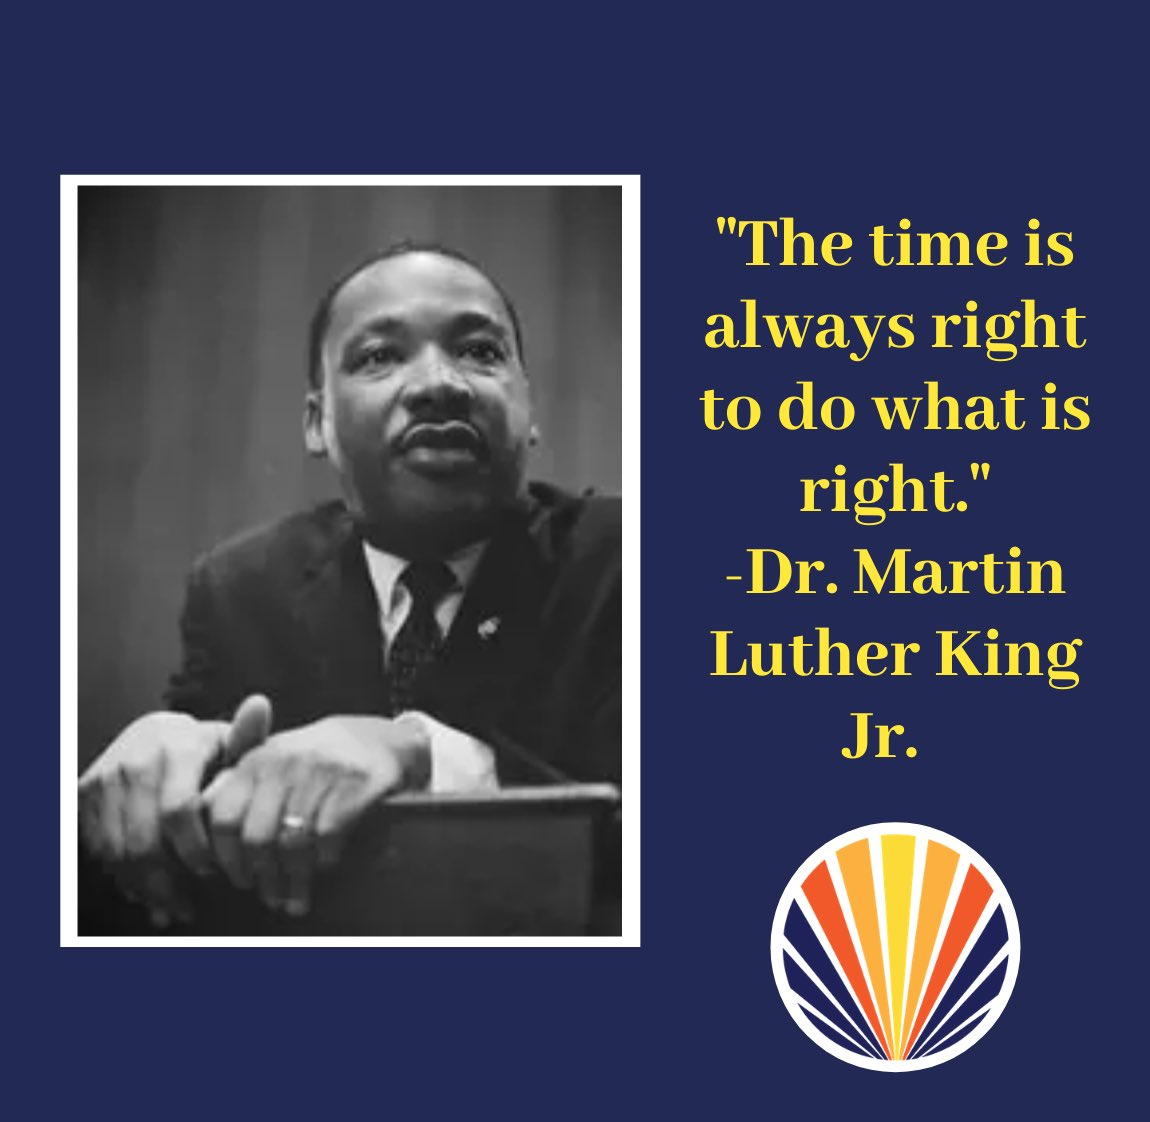 Dr. Martin Luther King Jr.'s accomplishments and legacy serve as an inspiration for all of the Civitas community. We celebrate him every day. #MLKDay https://t.co/W0mKp684G0